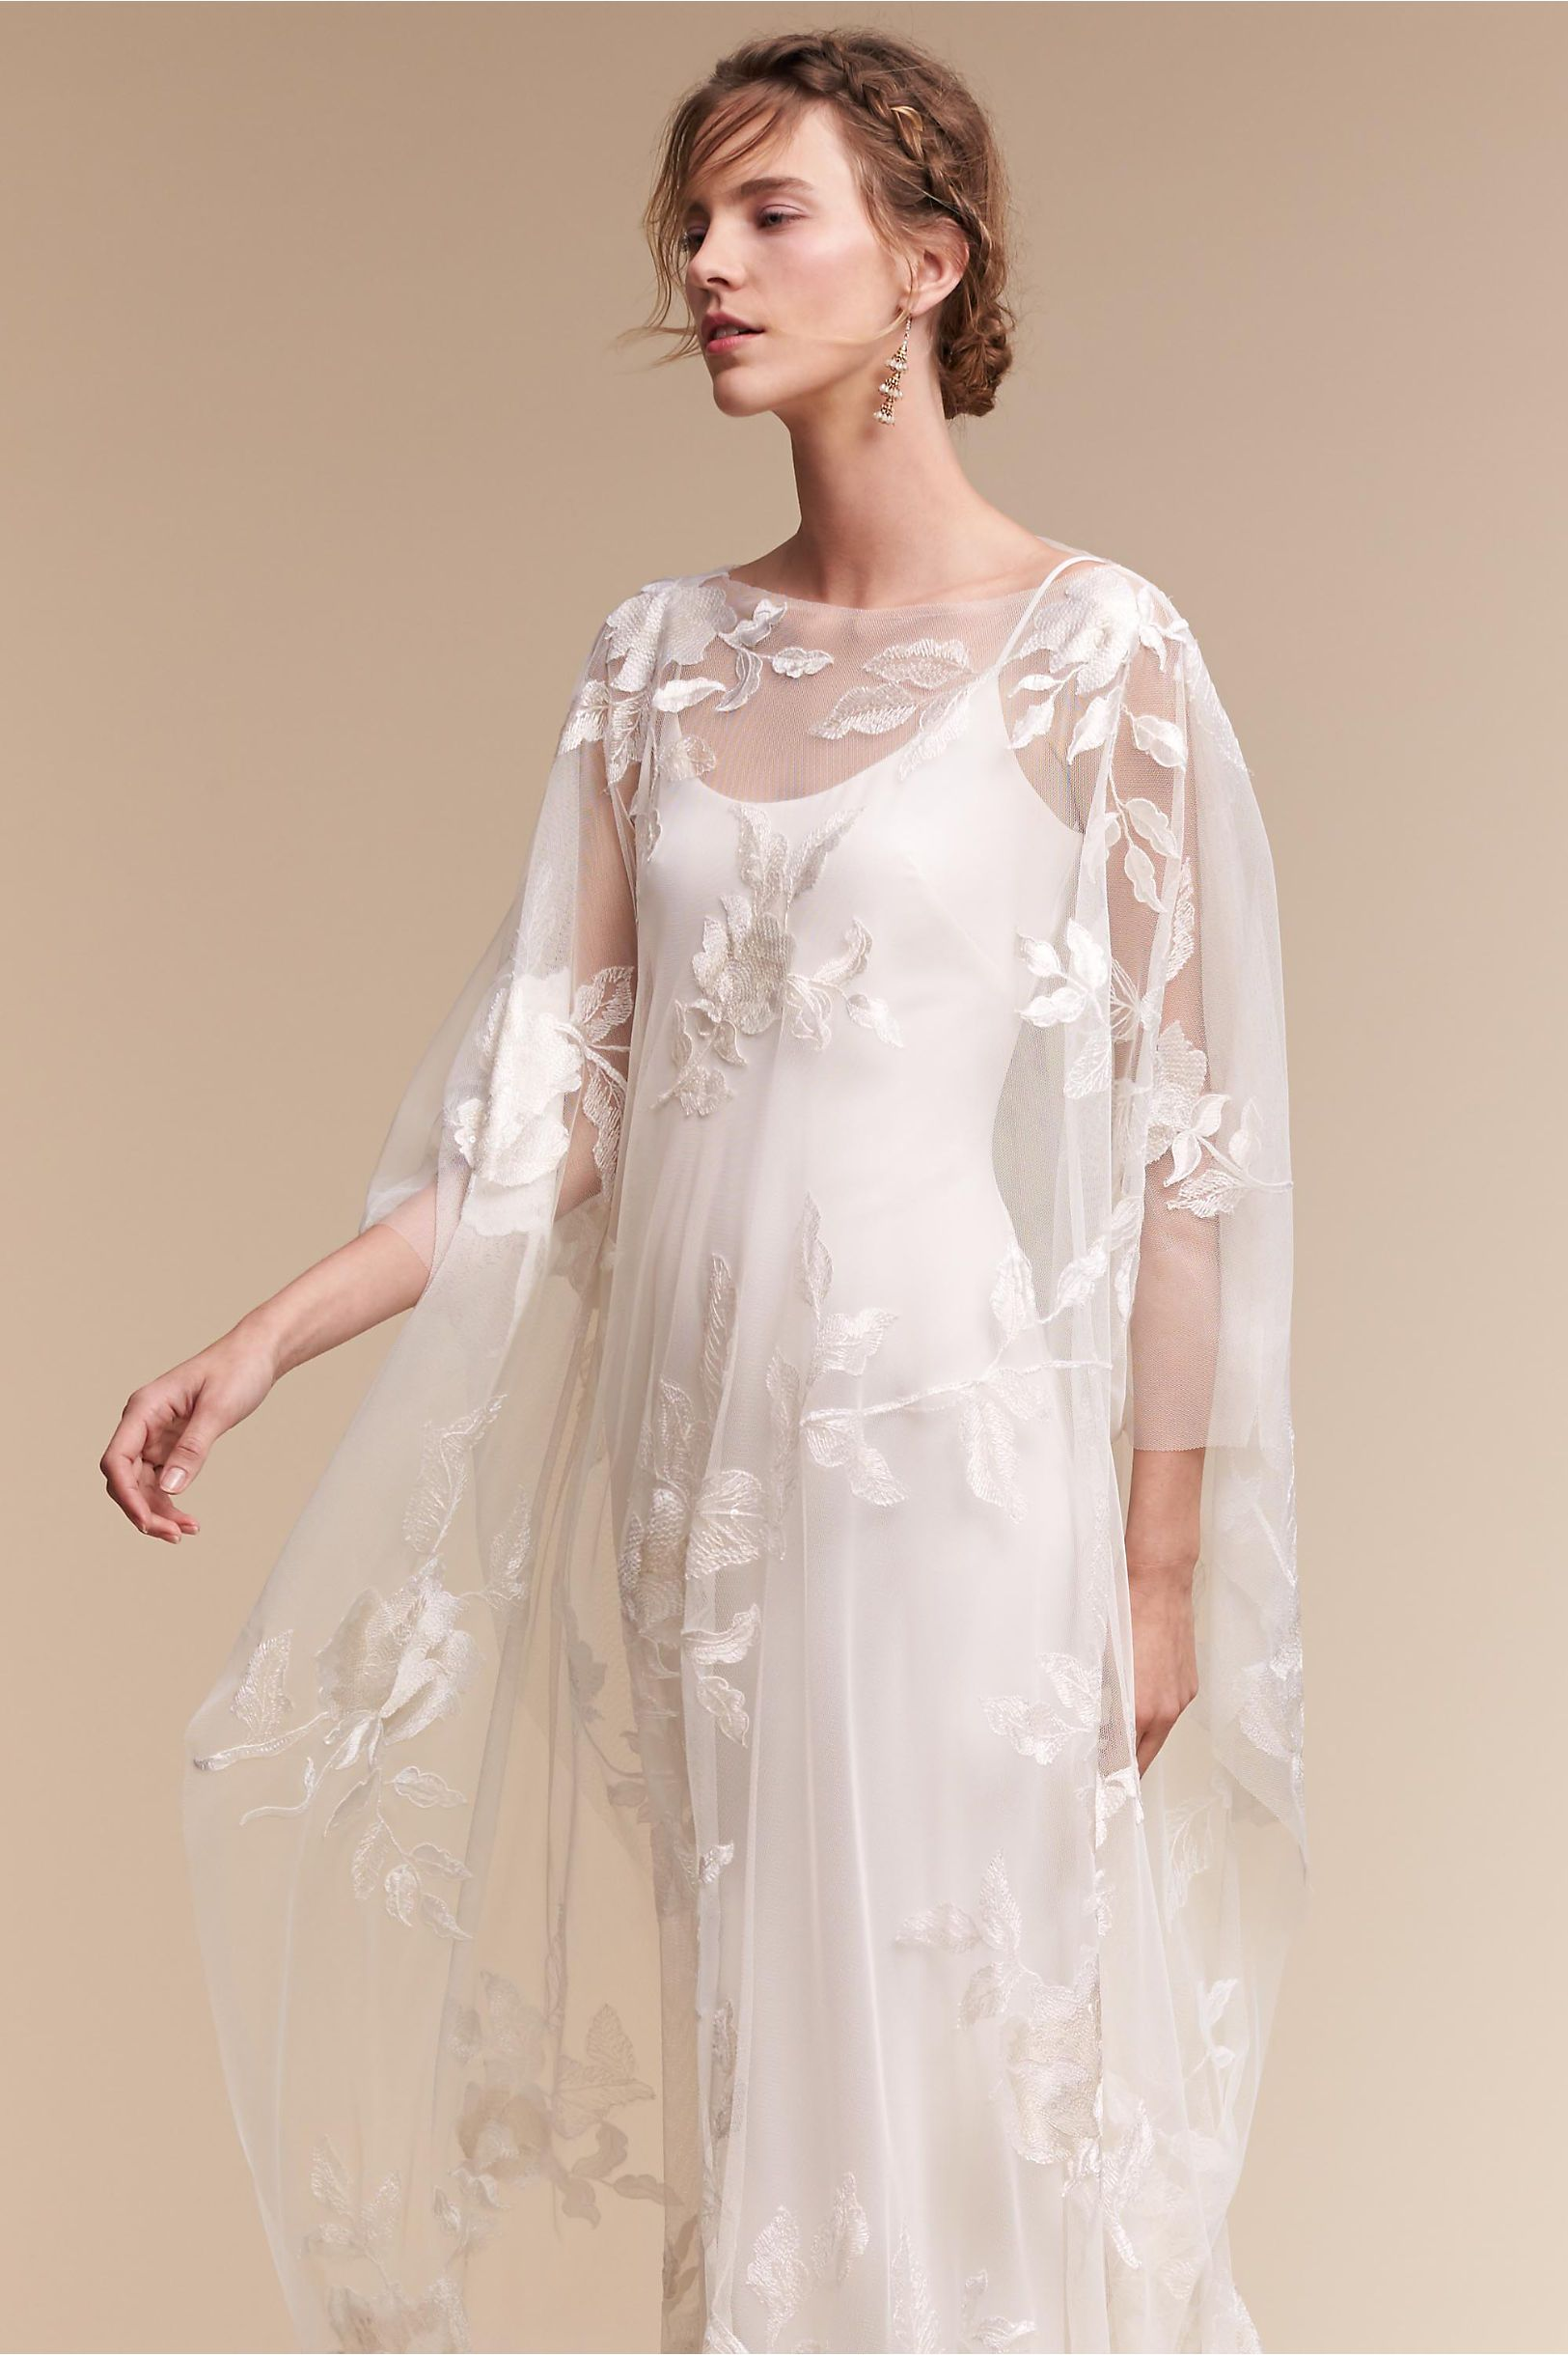 Bhldn Rhiannon Cape In Shoes Accessories Cover Ups Bhldn